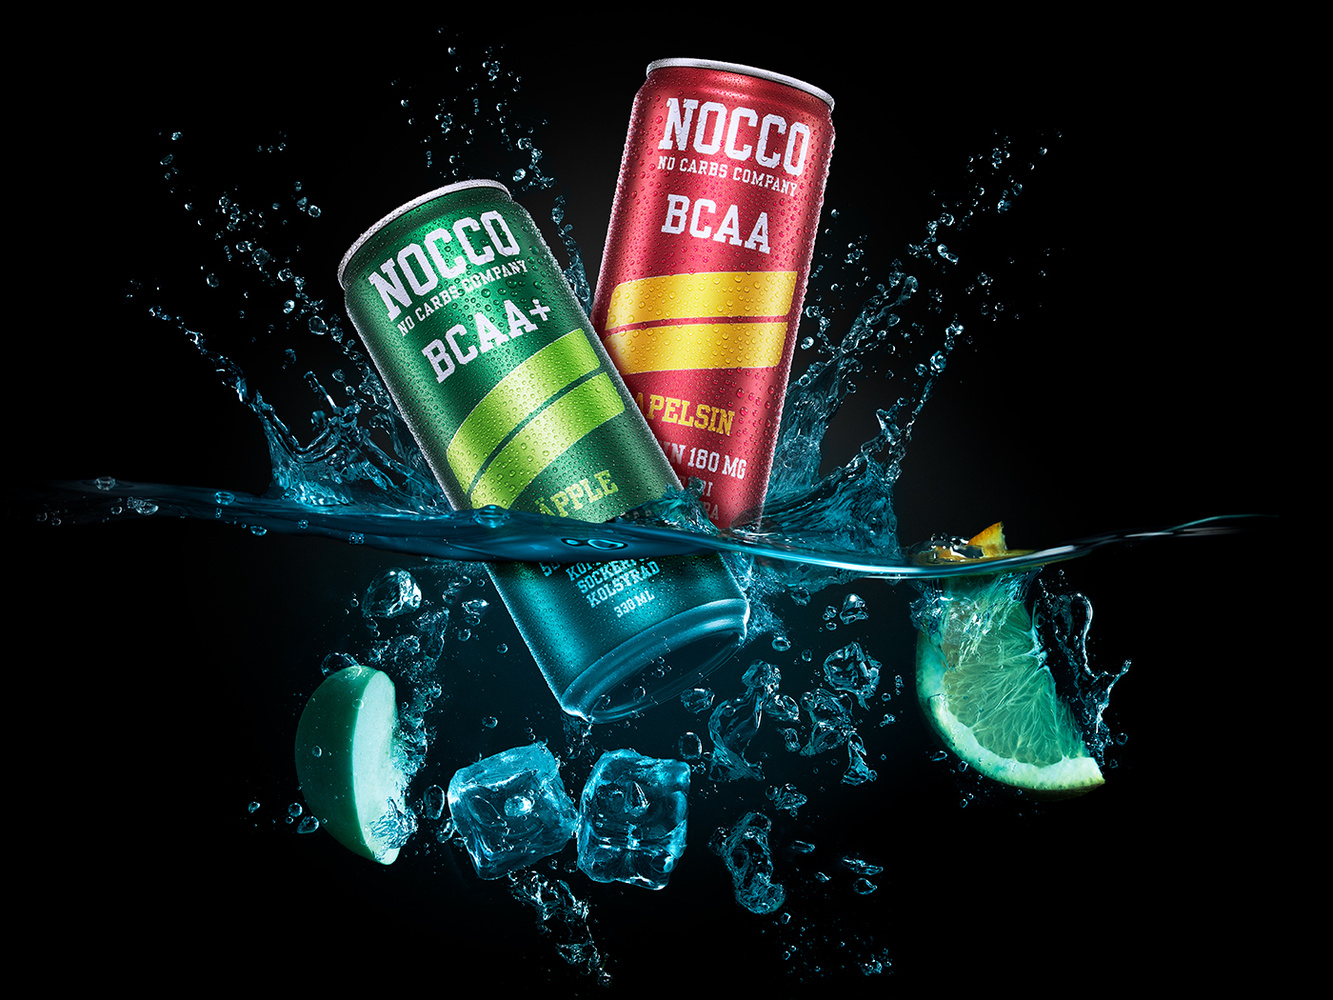 Nocco energy drink conceptual image by Markus Pettersson